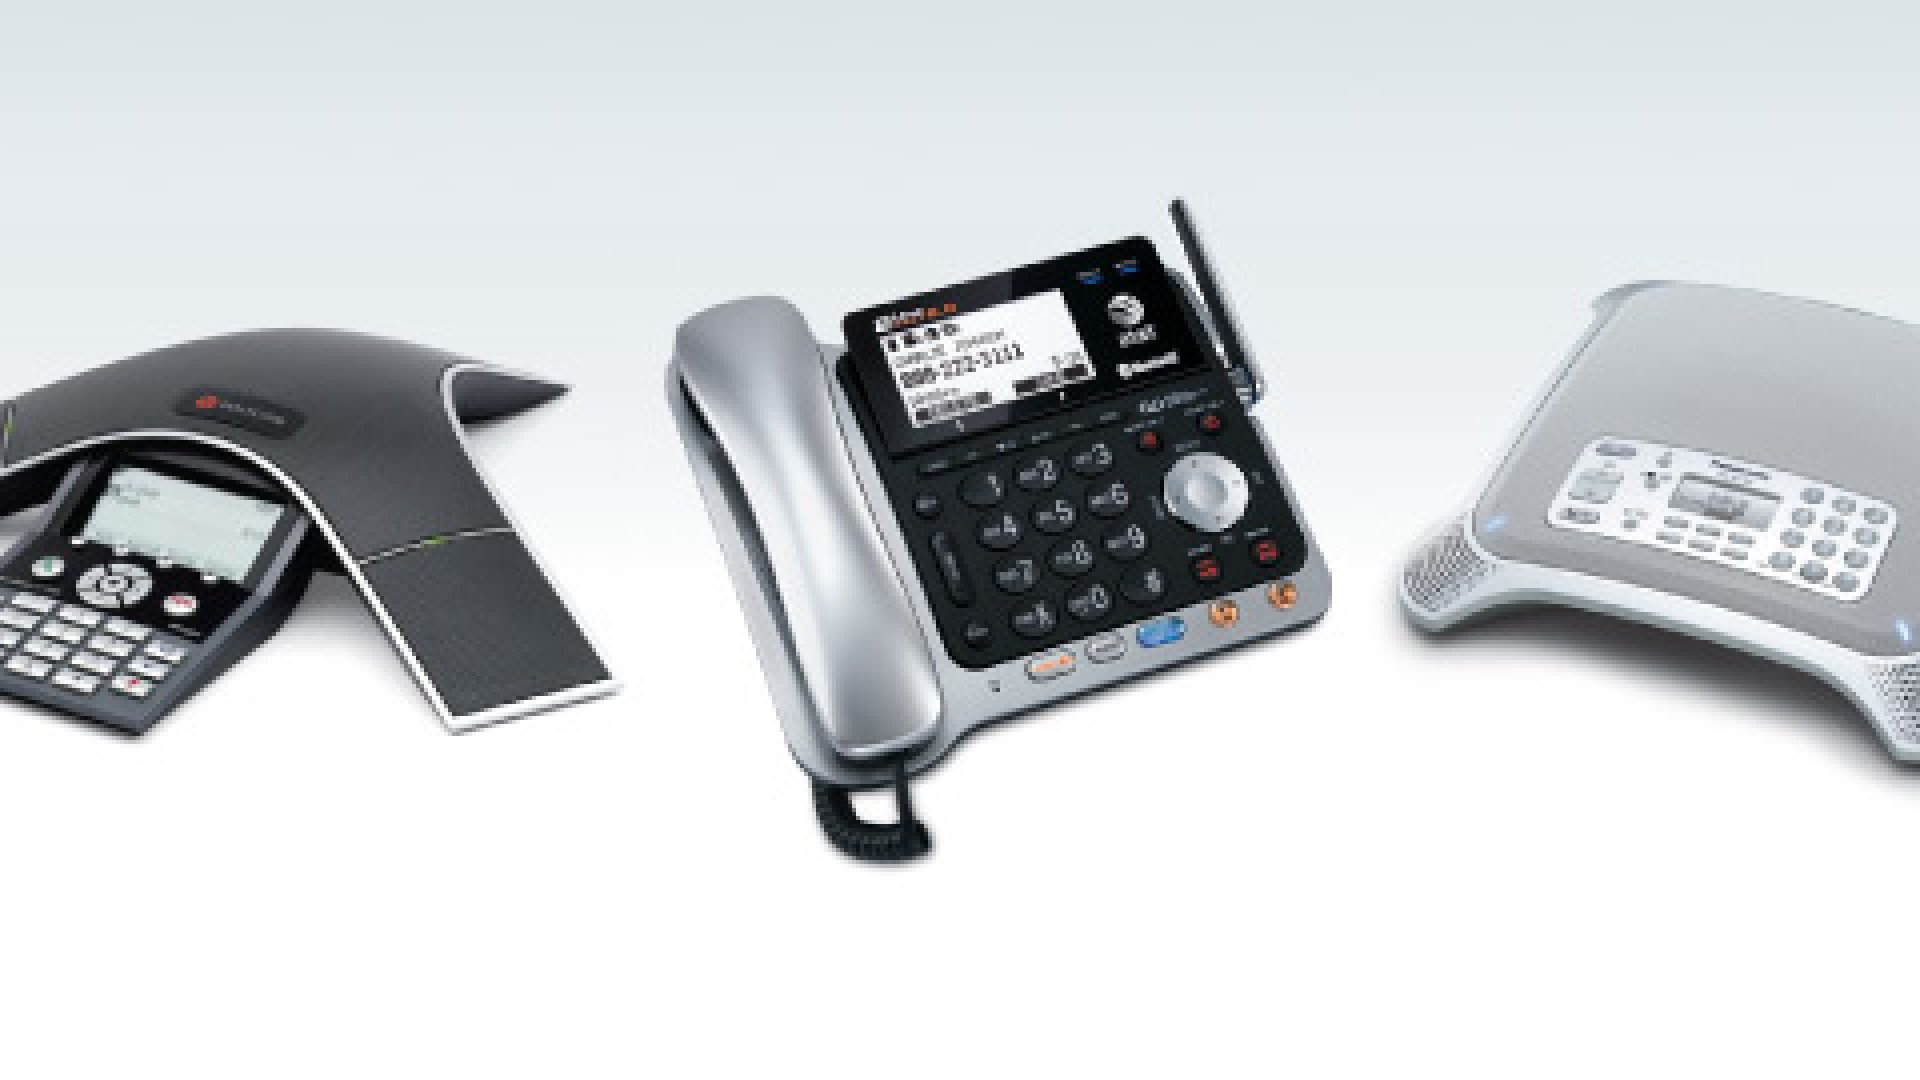 <strong>From Left:</strong> Polycom SoundStation IP 7000, AT&T TL86109, Panasonic KX-NT700 V2